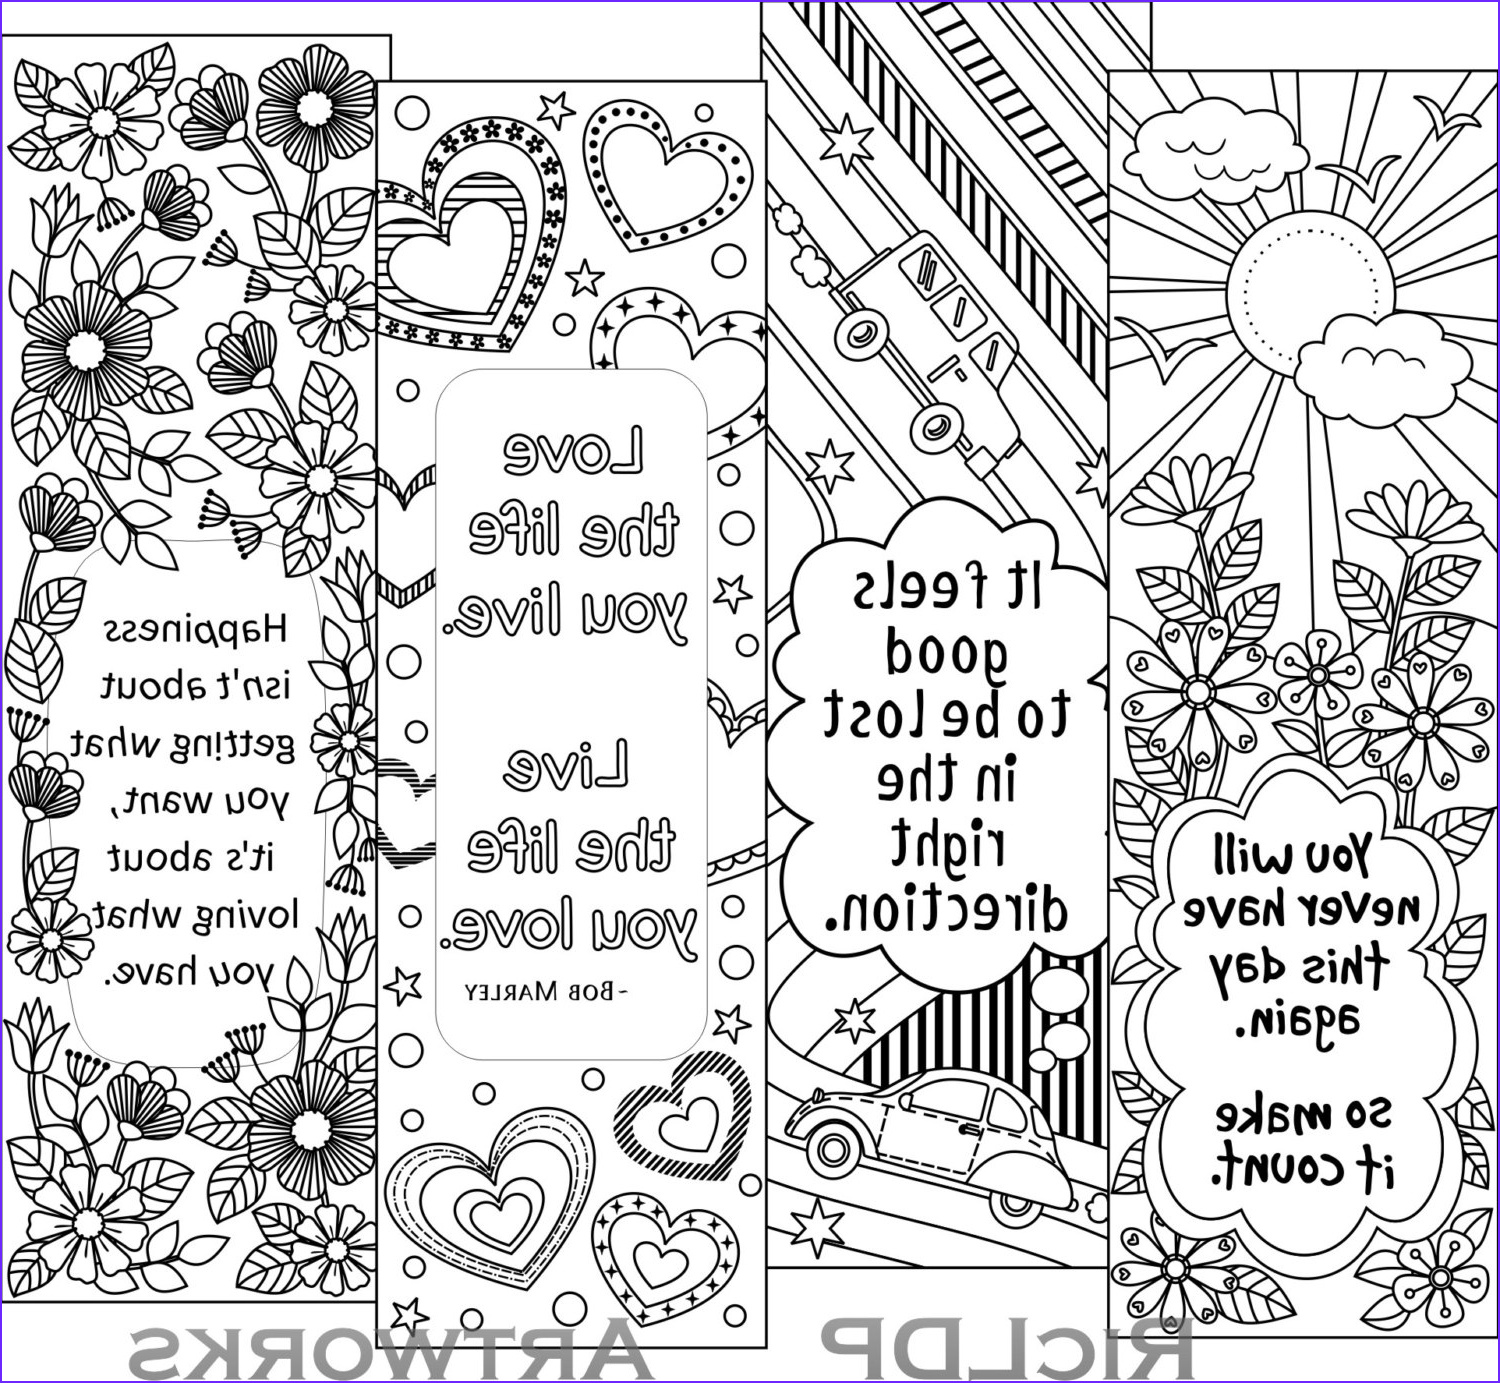 Free Coloring Bookmarks Inspirational Photography Printable Colouring Bookmarks with Quotes Coloring Bookmark